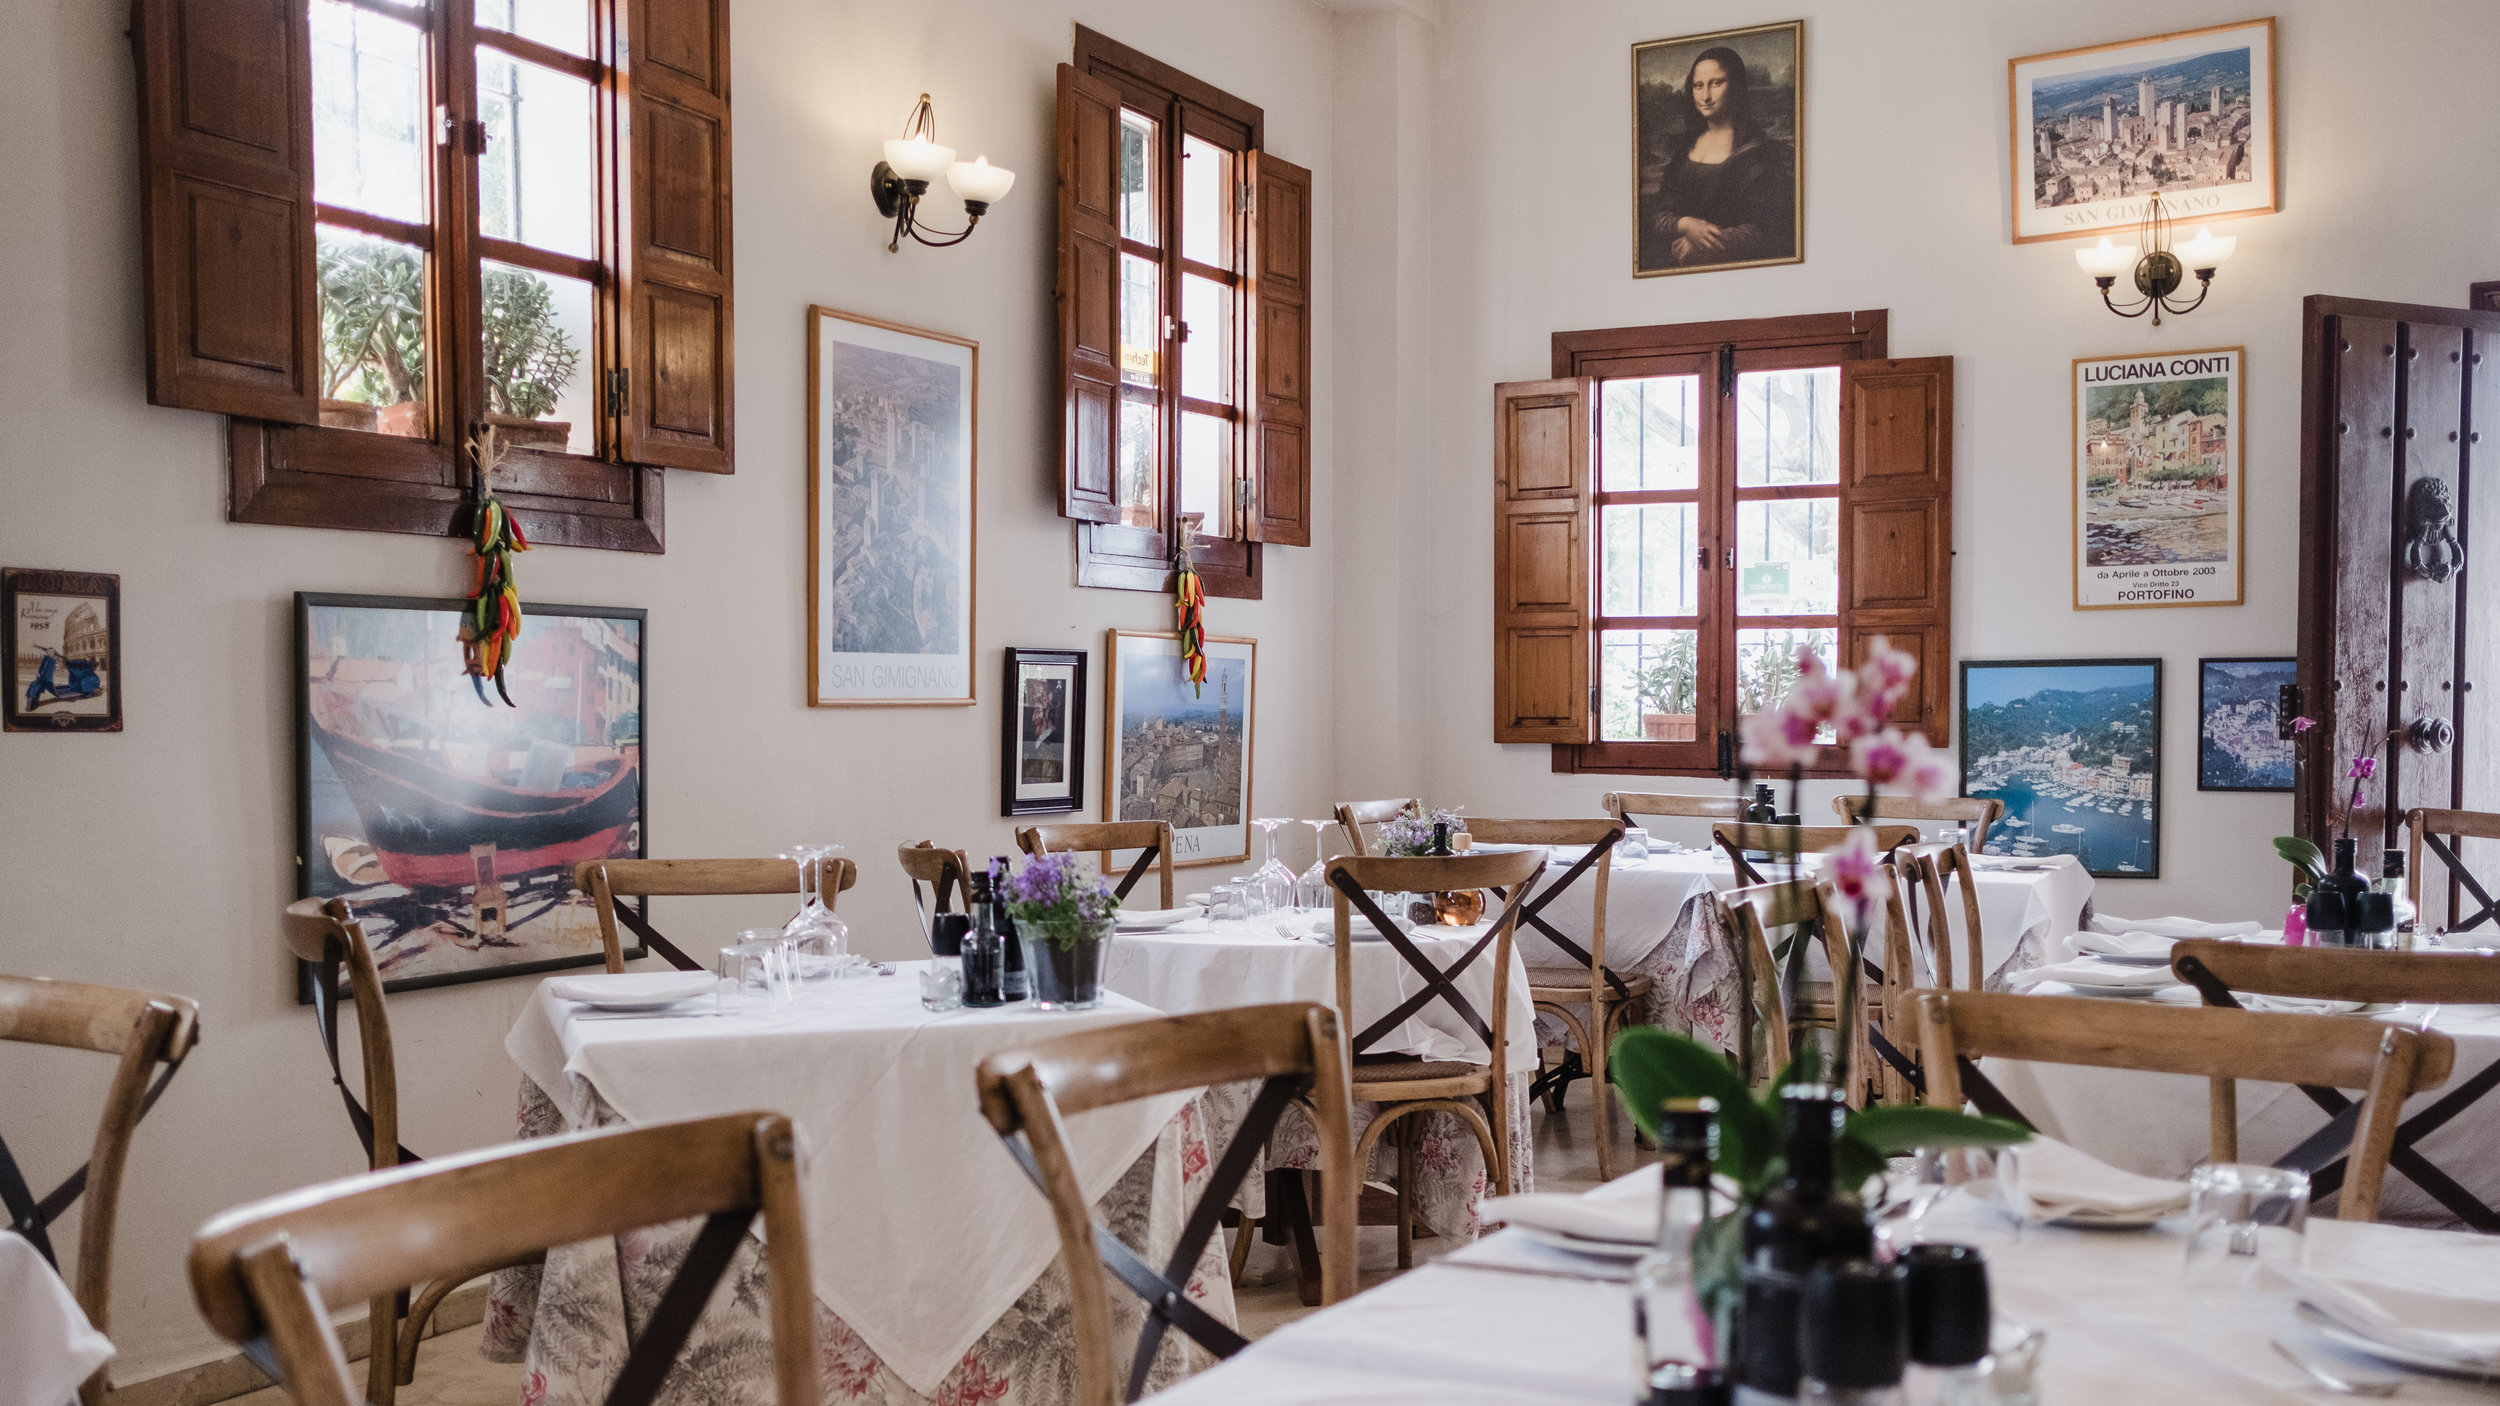 Trattoria-style - A charming little Italian place